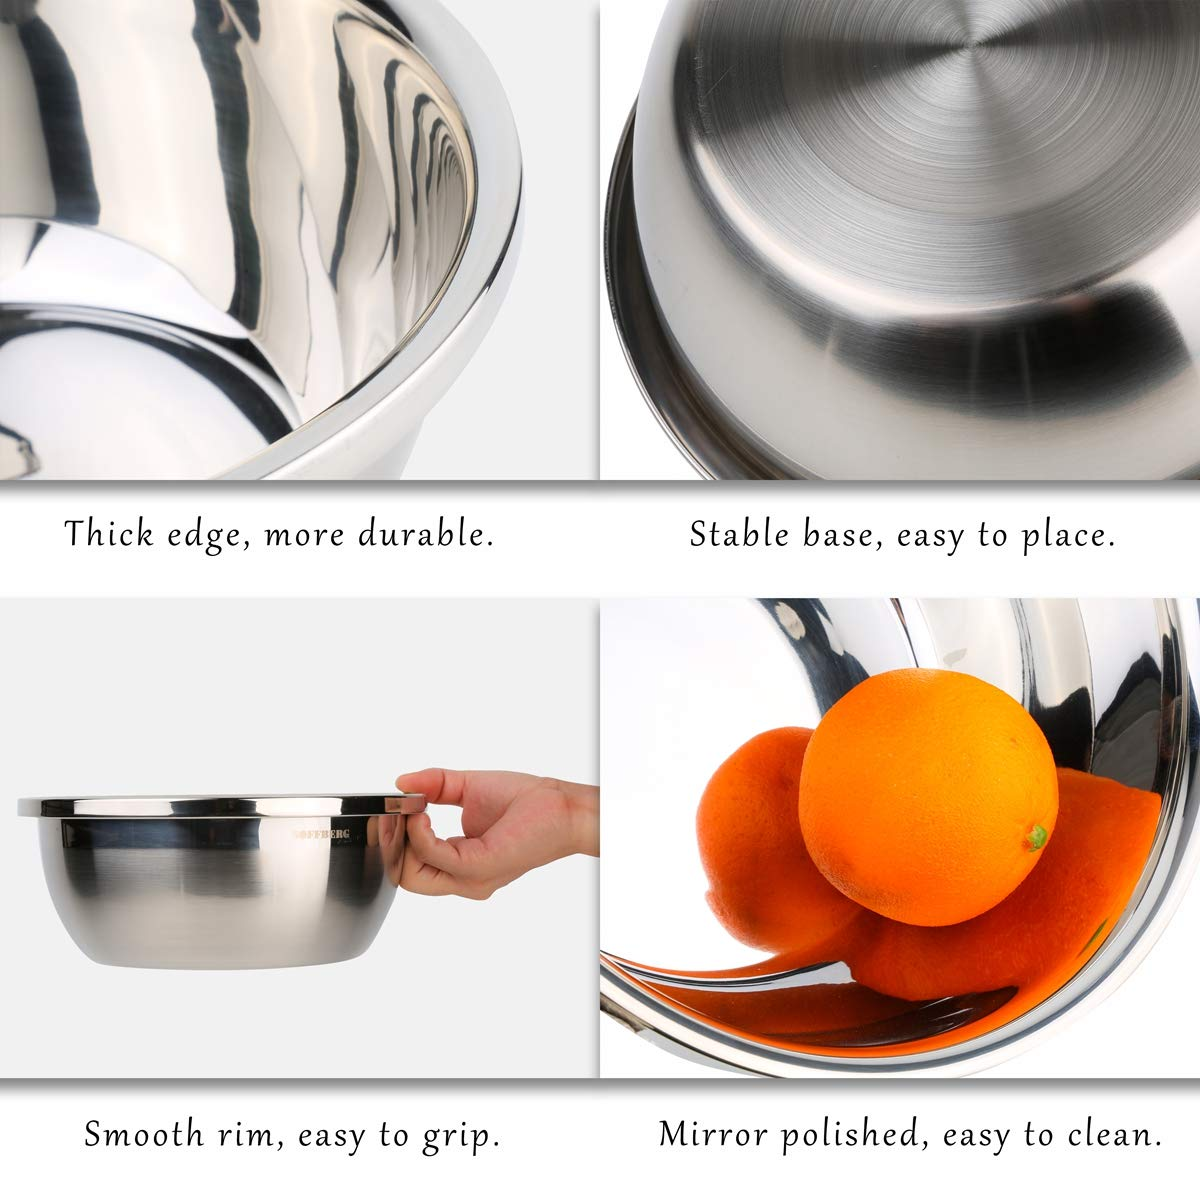 Set of 6 Mixing Bowls Stainless Steel Nesting and Convenient Storage for Meal prep, Salad, Cooking, Baking, Serving by SOFFBERG (Image #3)